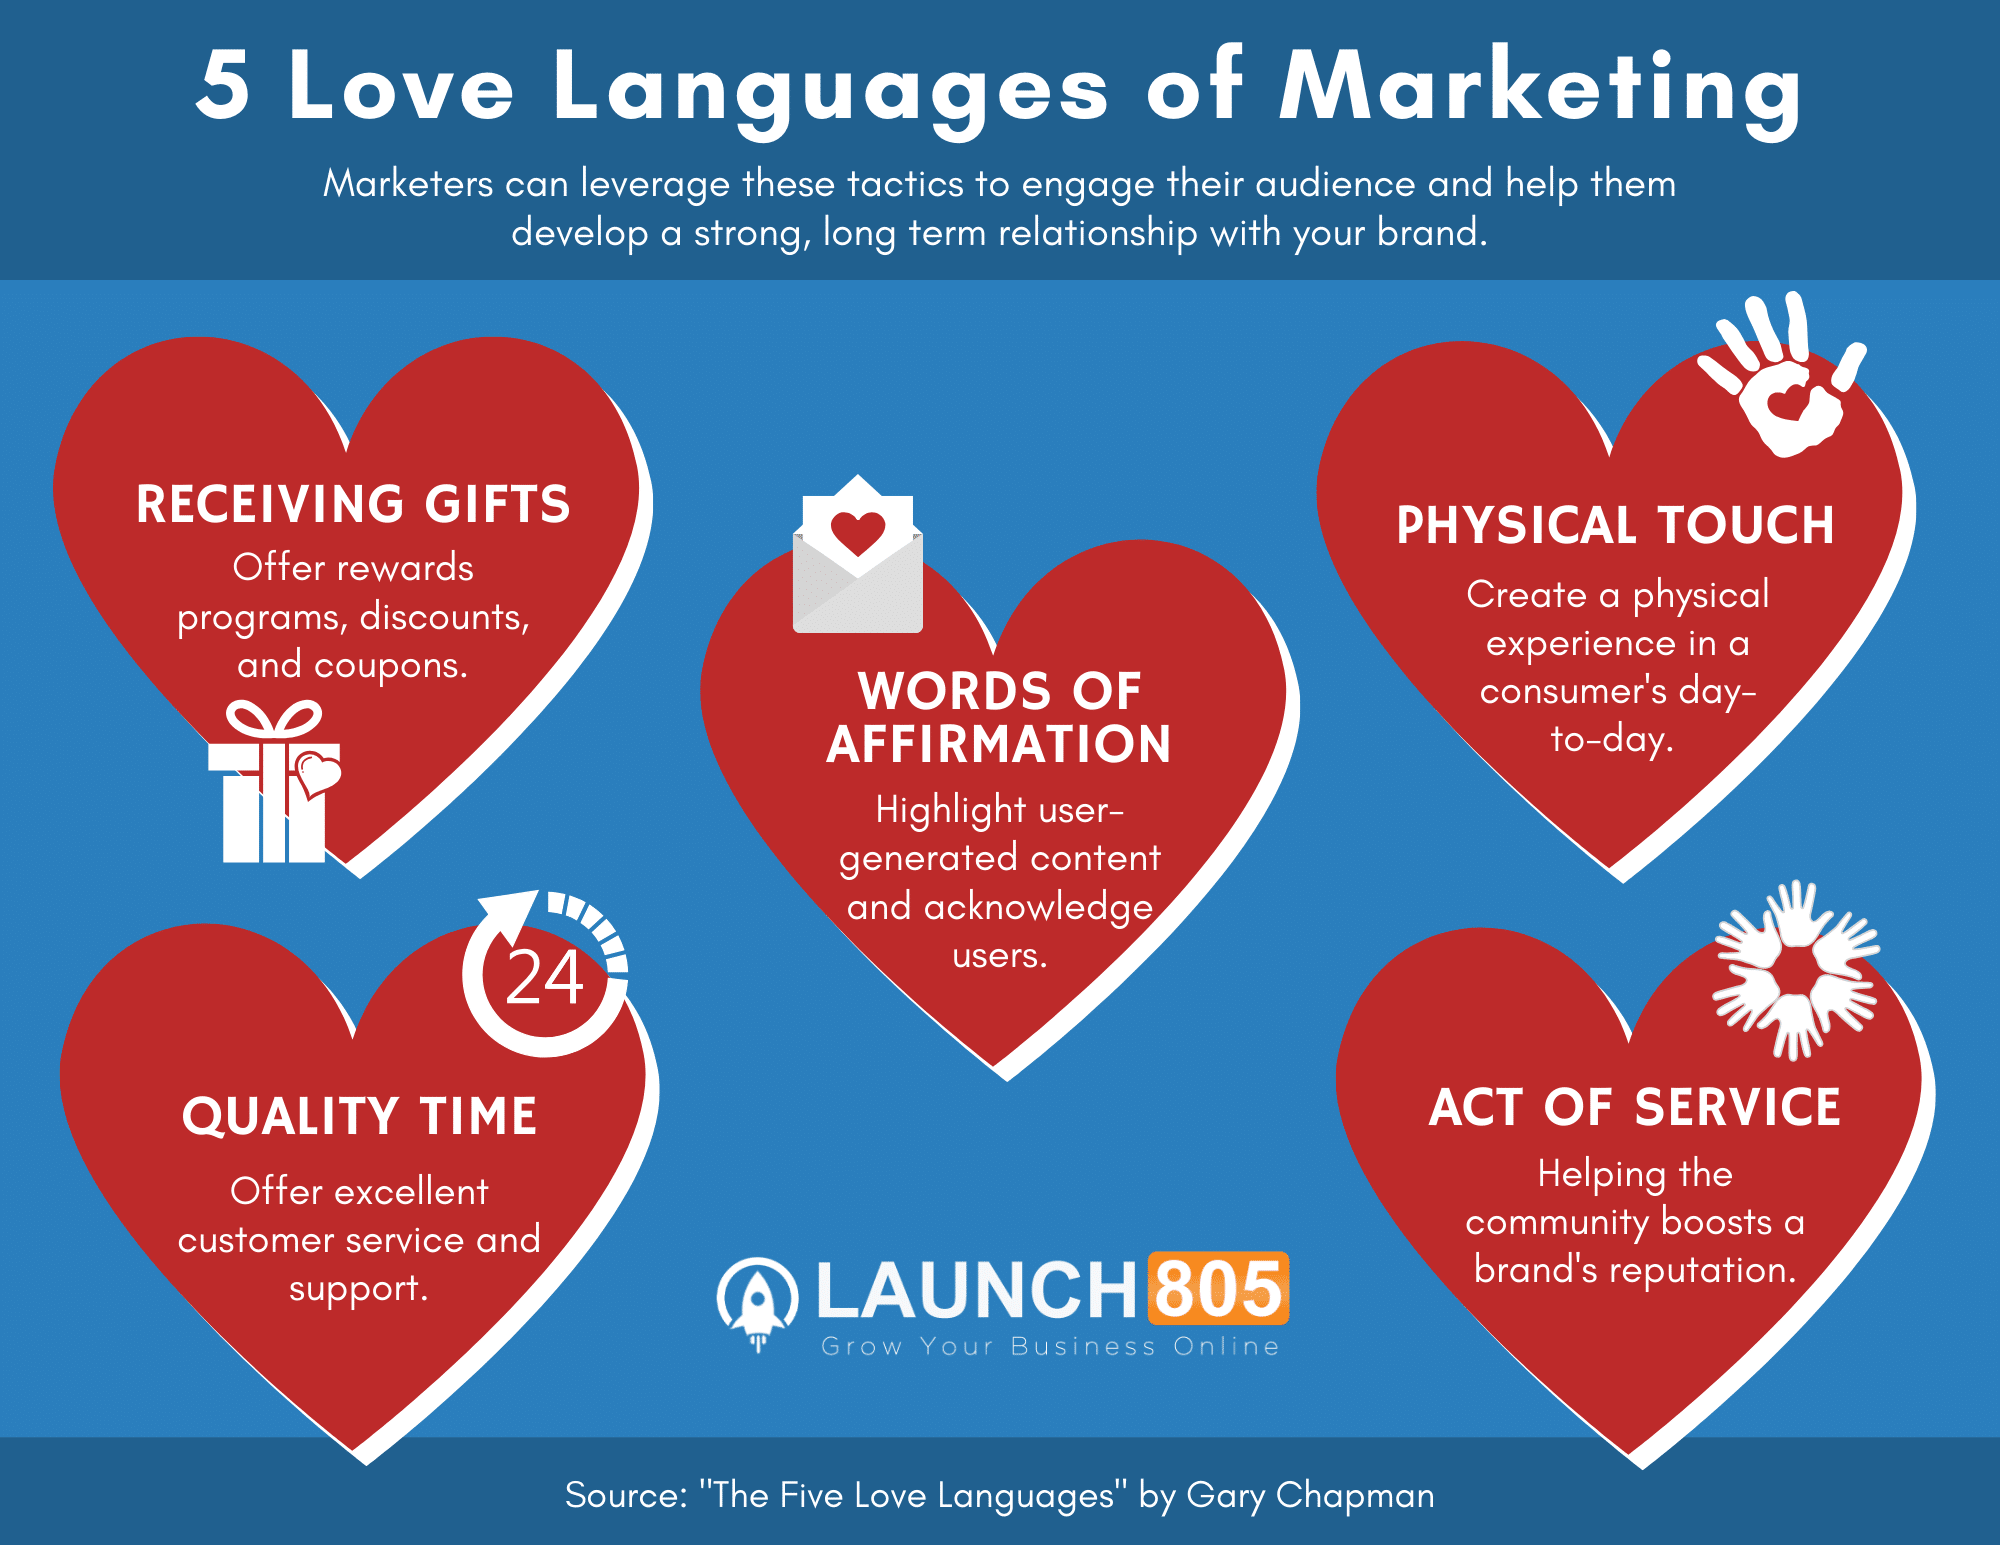 5 Love Languages of Marketing